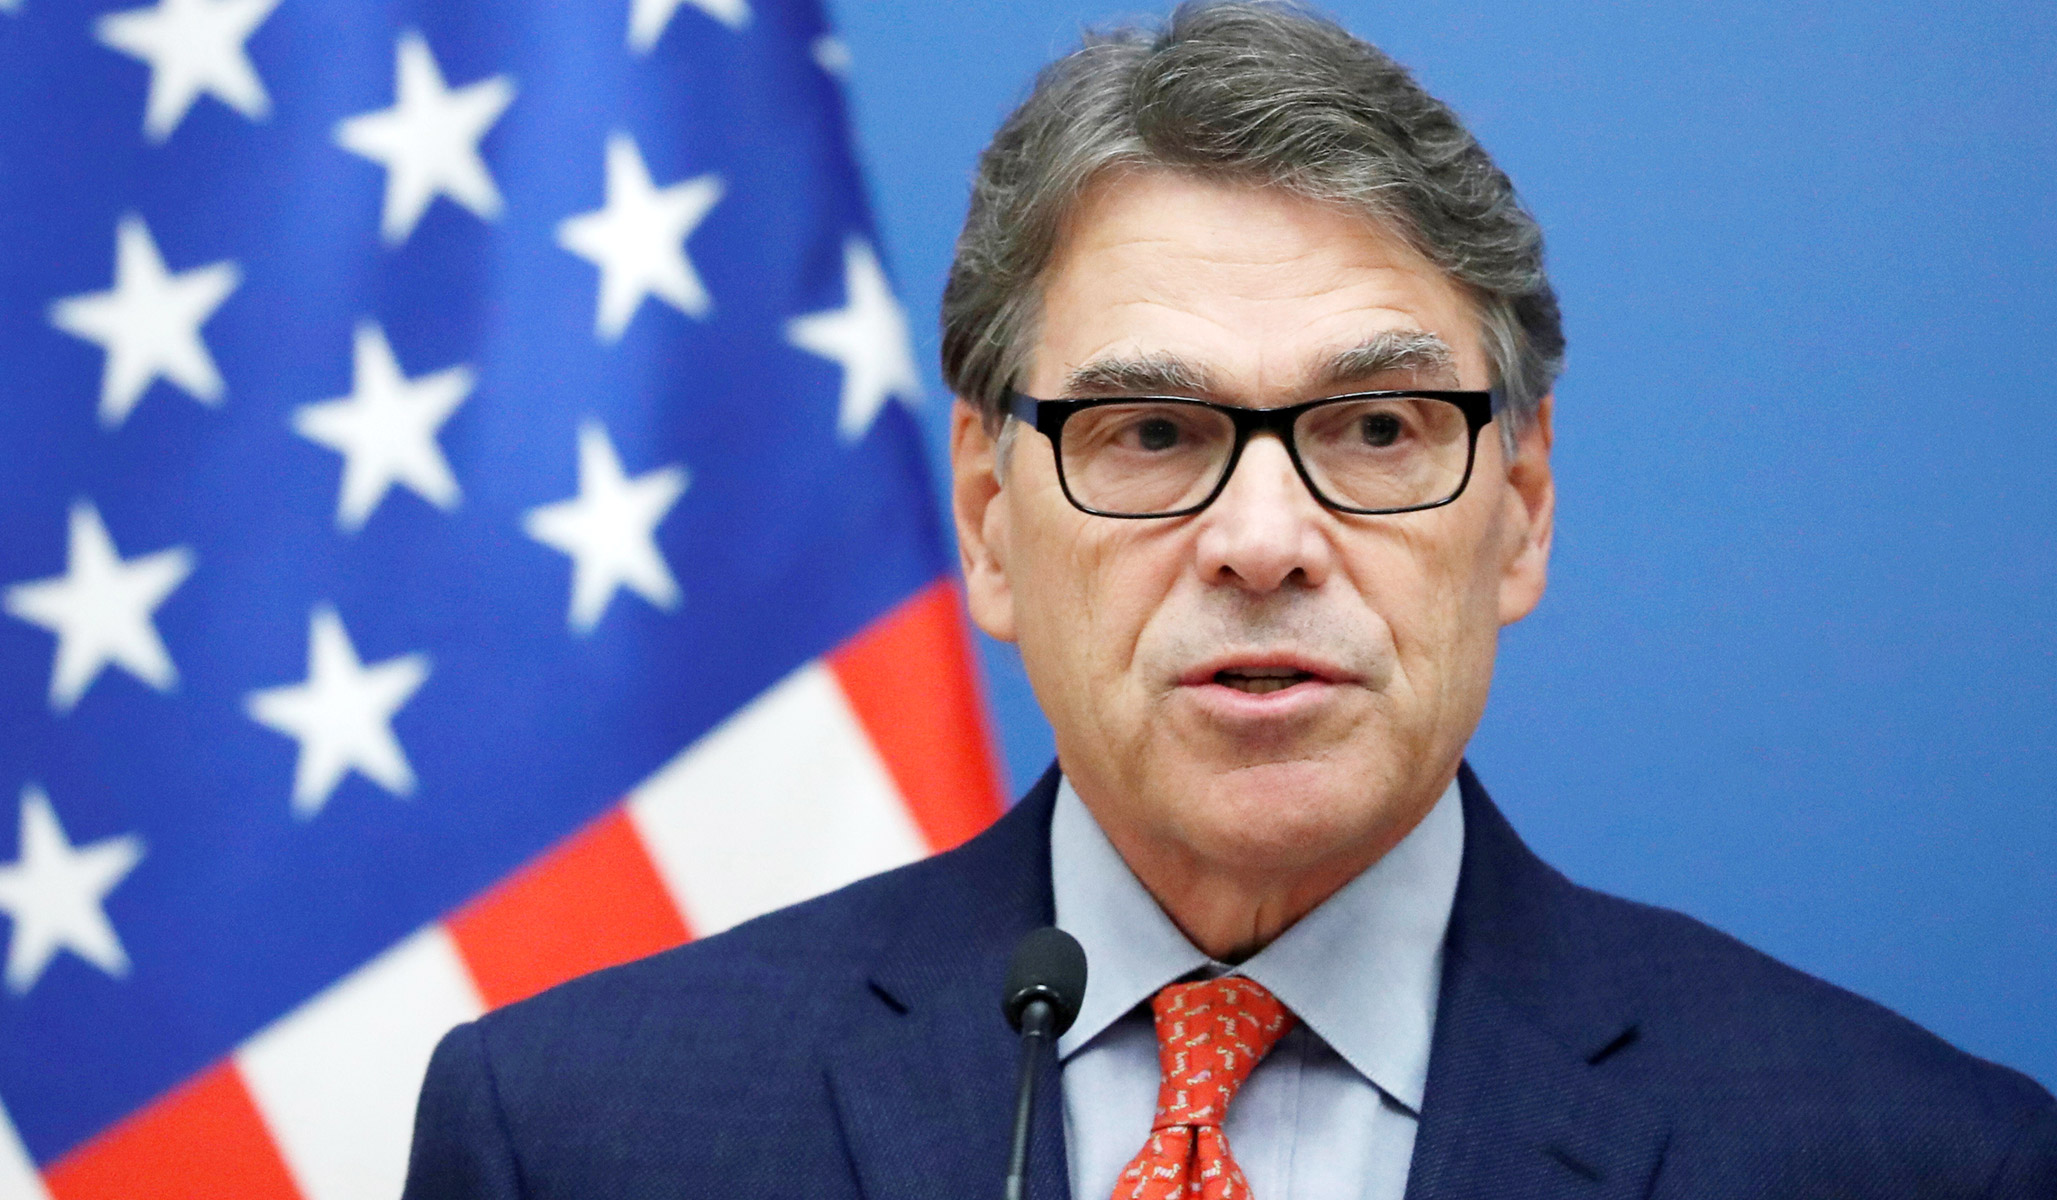 House Democrats Subpoena Rick Perry over Ukraine Dealings